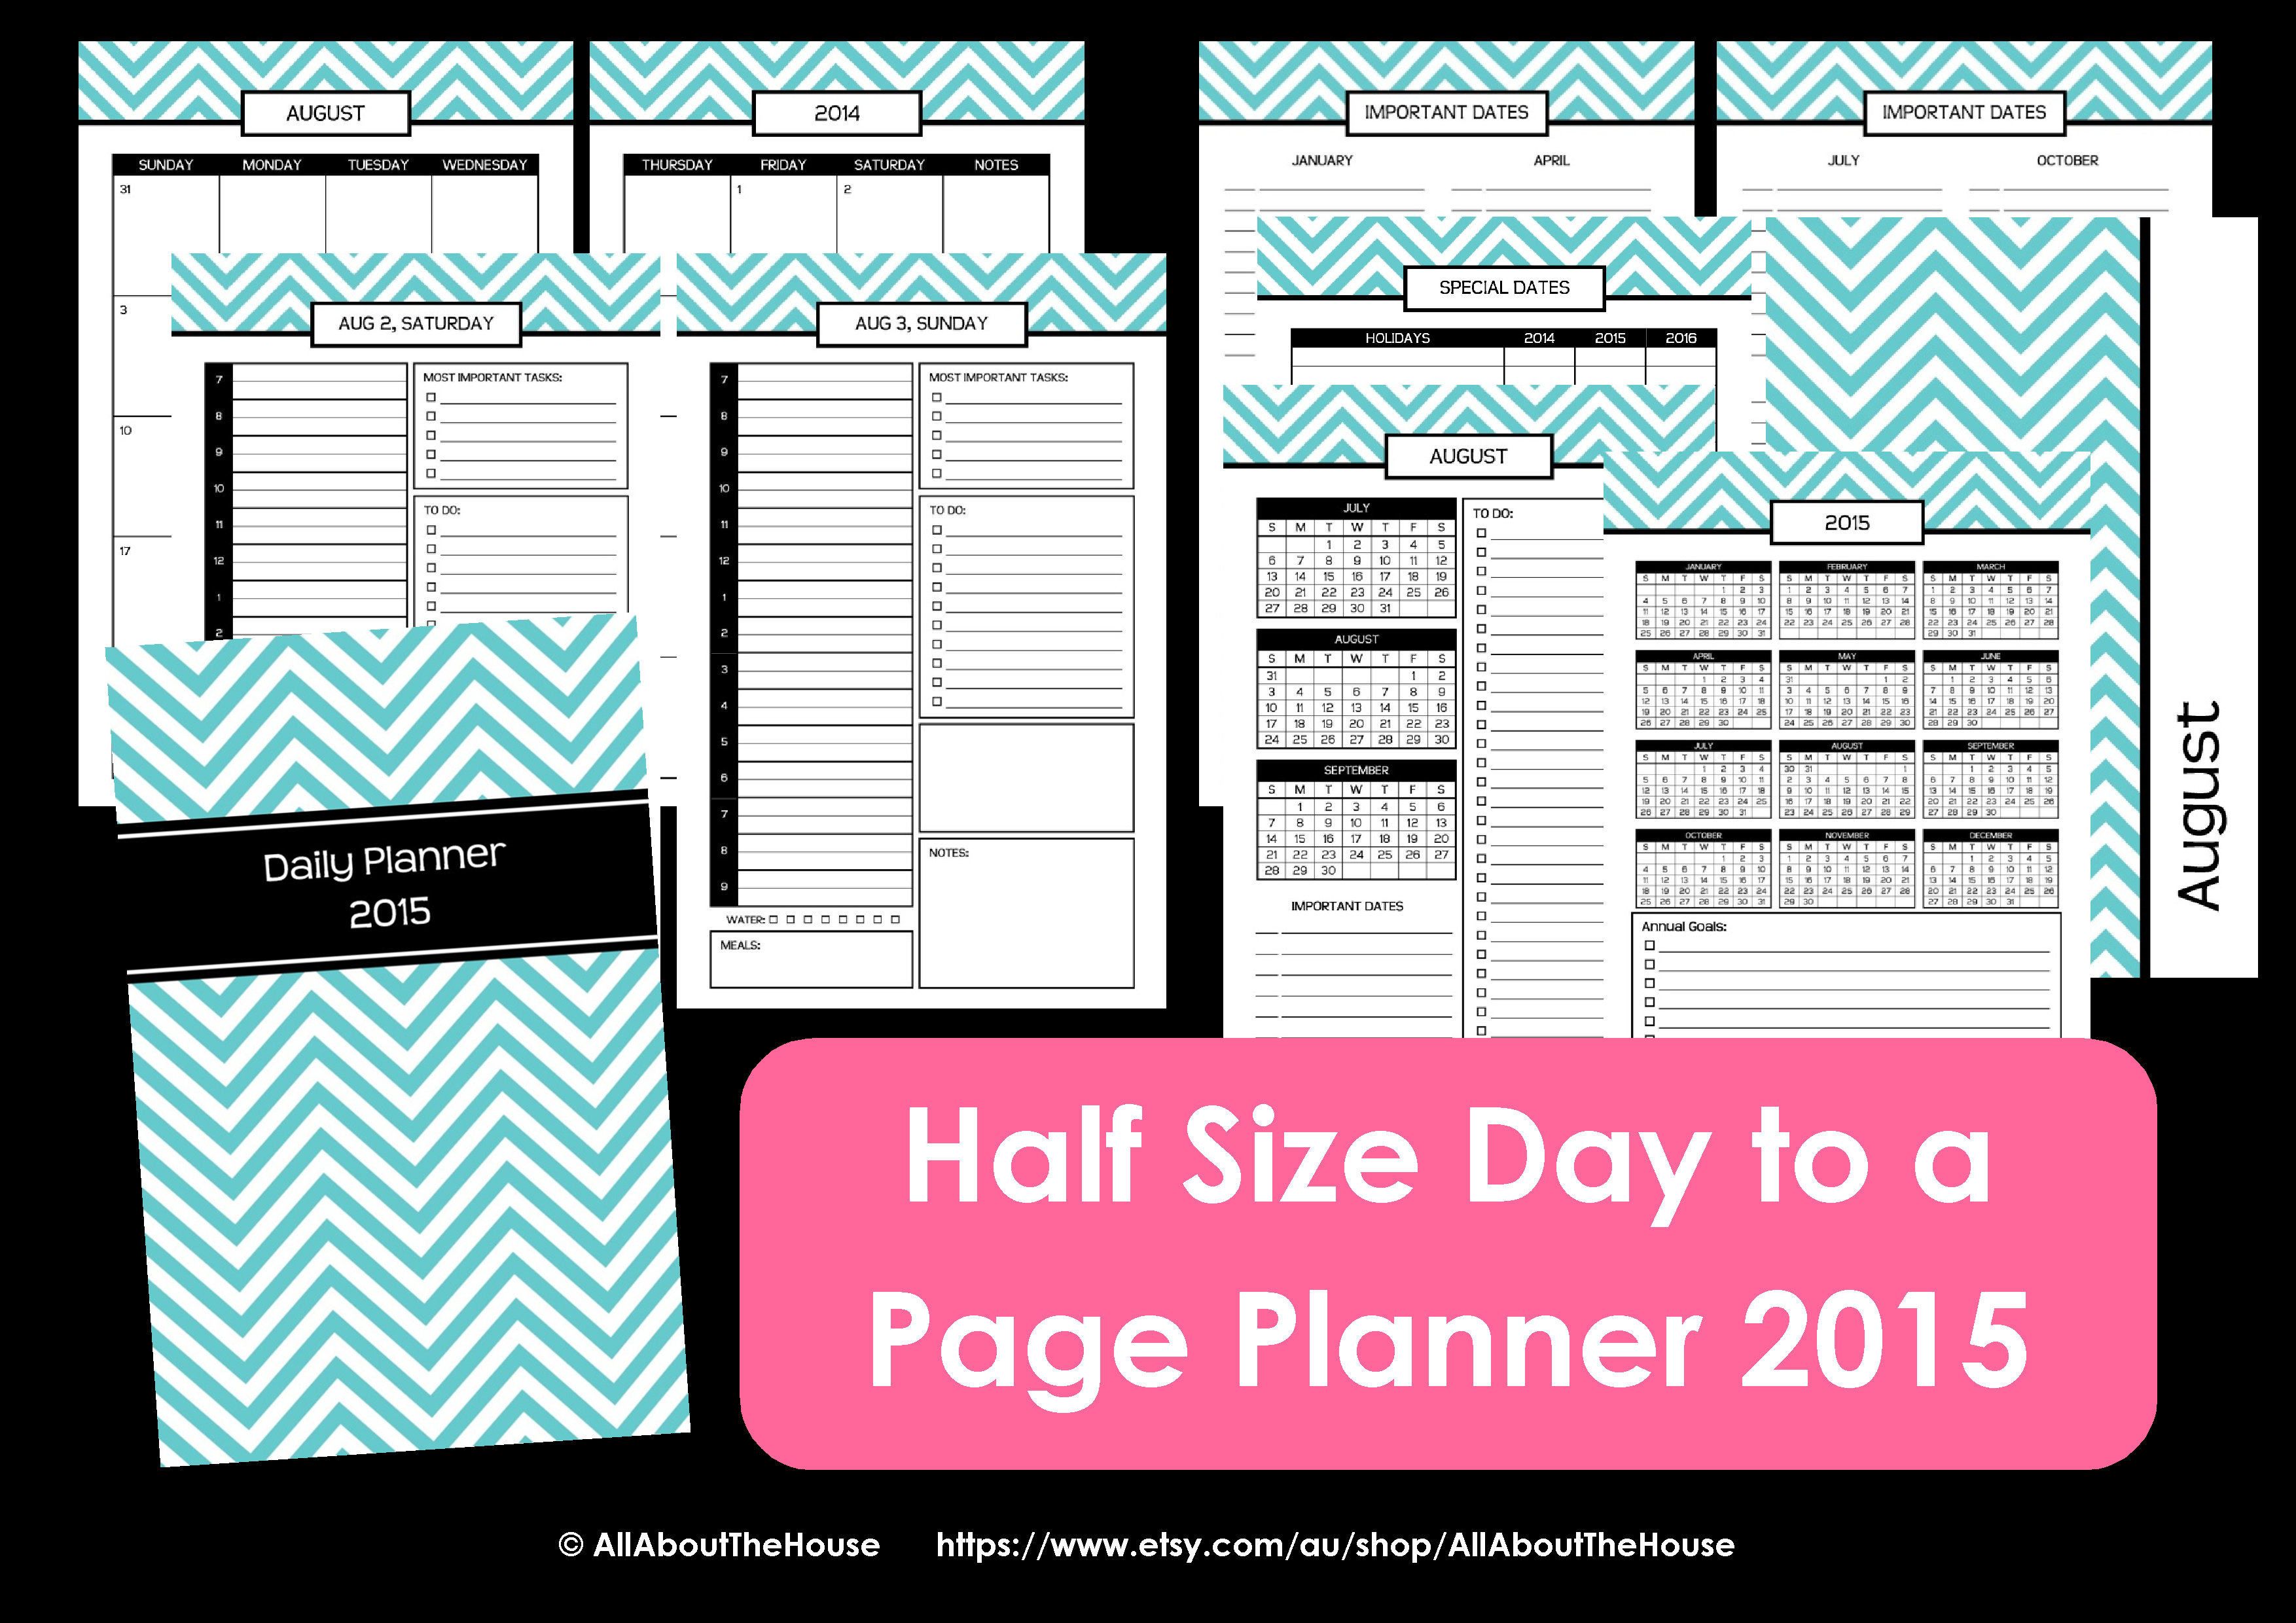 Calendar Planner Pdf : New half size printable planners for allaboutthehouse